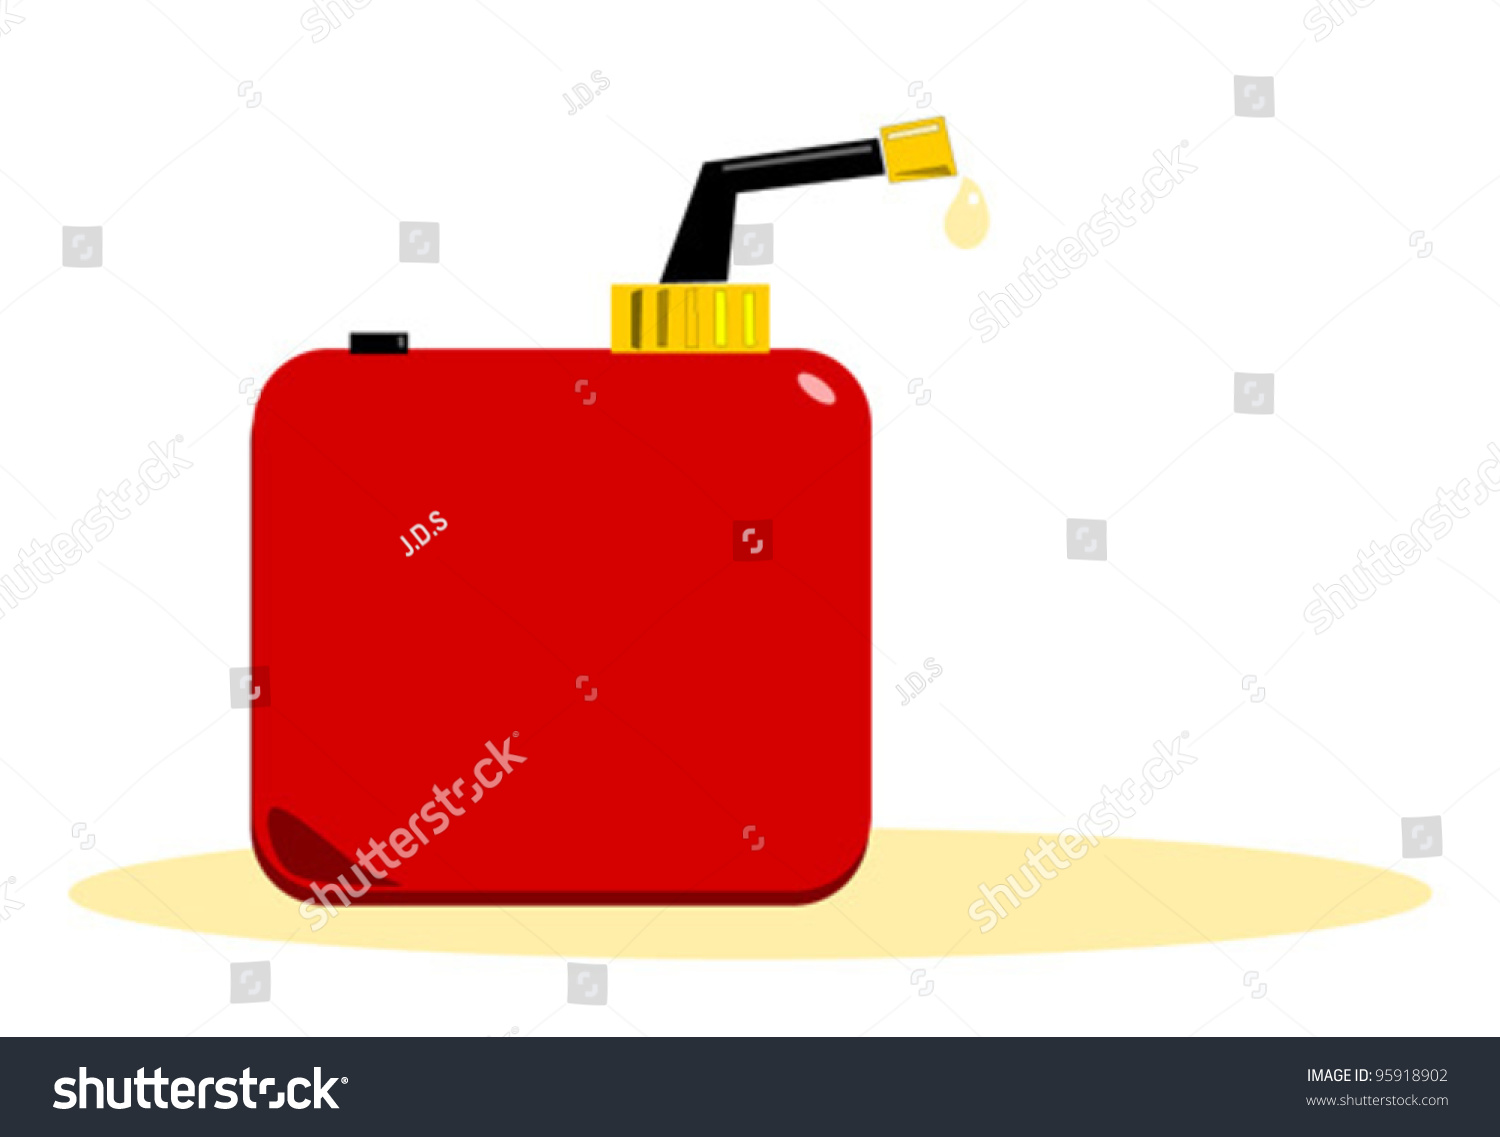 stock-vector-vector-illustration-of-gas-